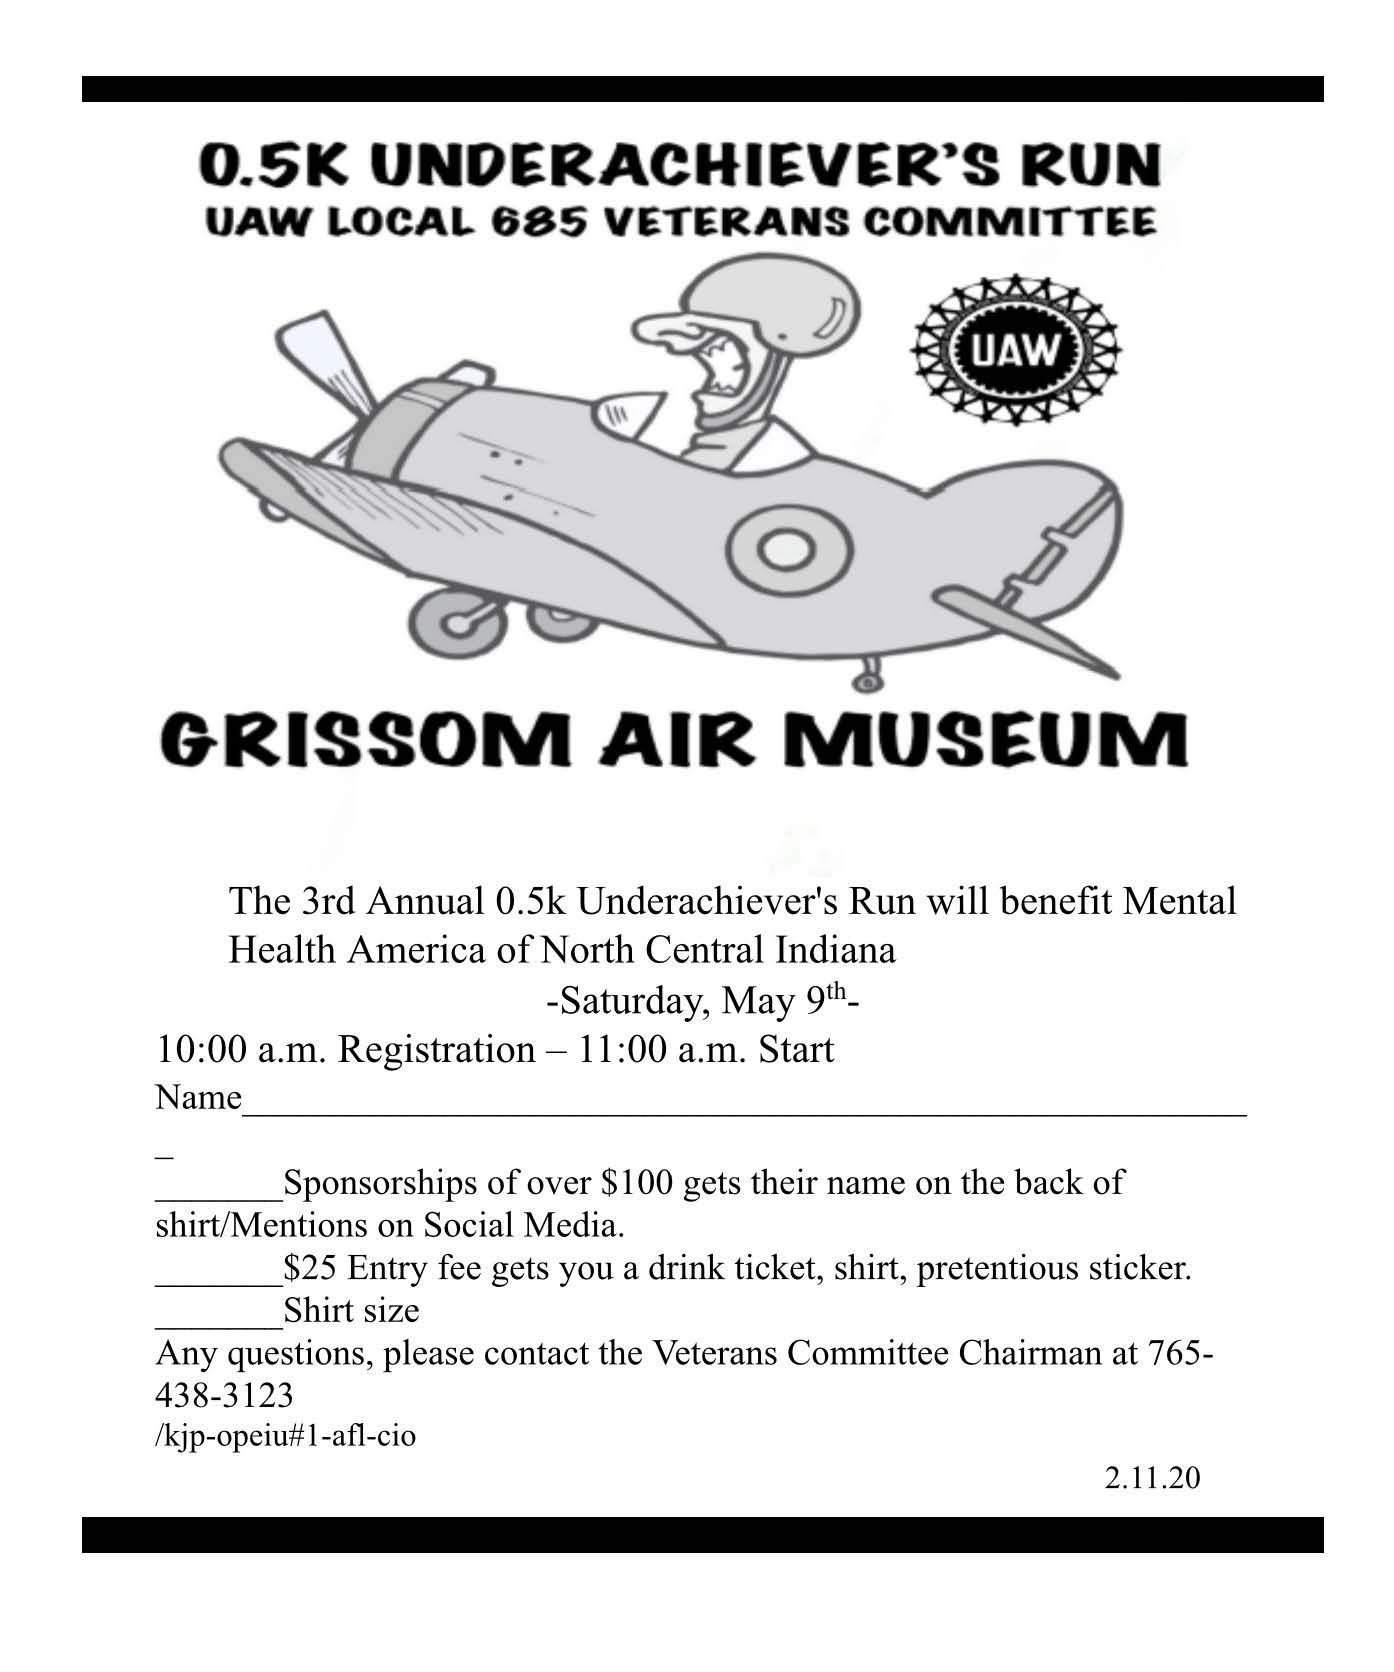 0.5k Underachiever's Run - Hosted by UAW Local 685